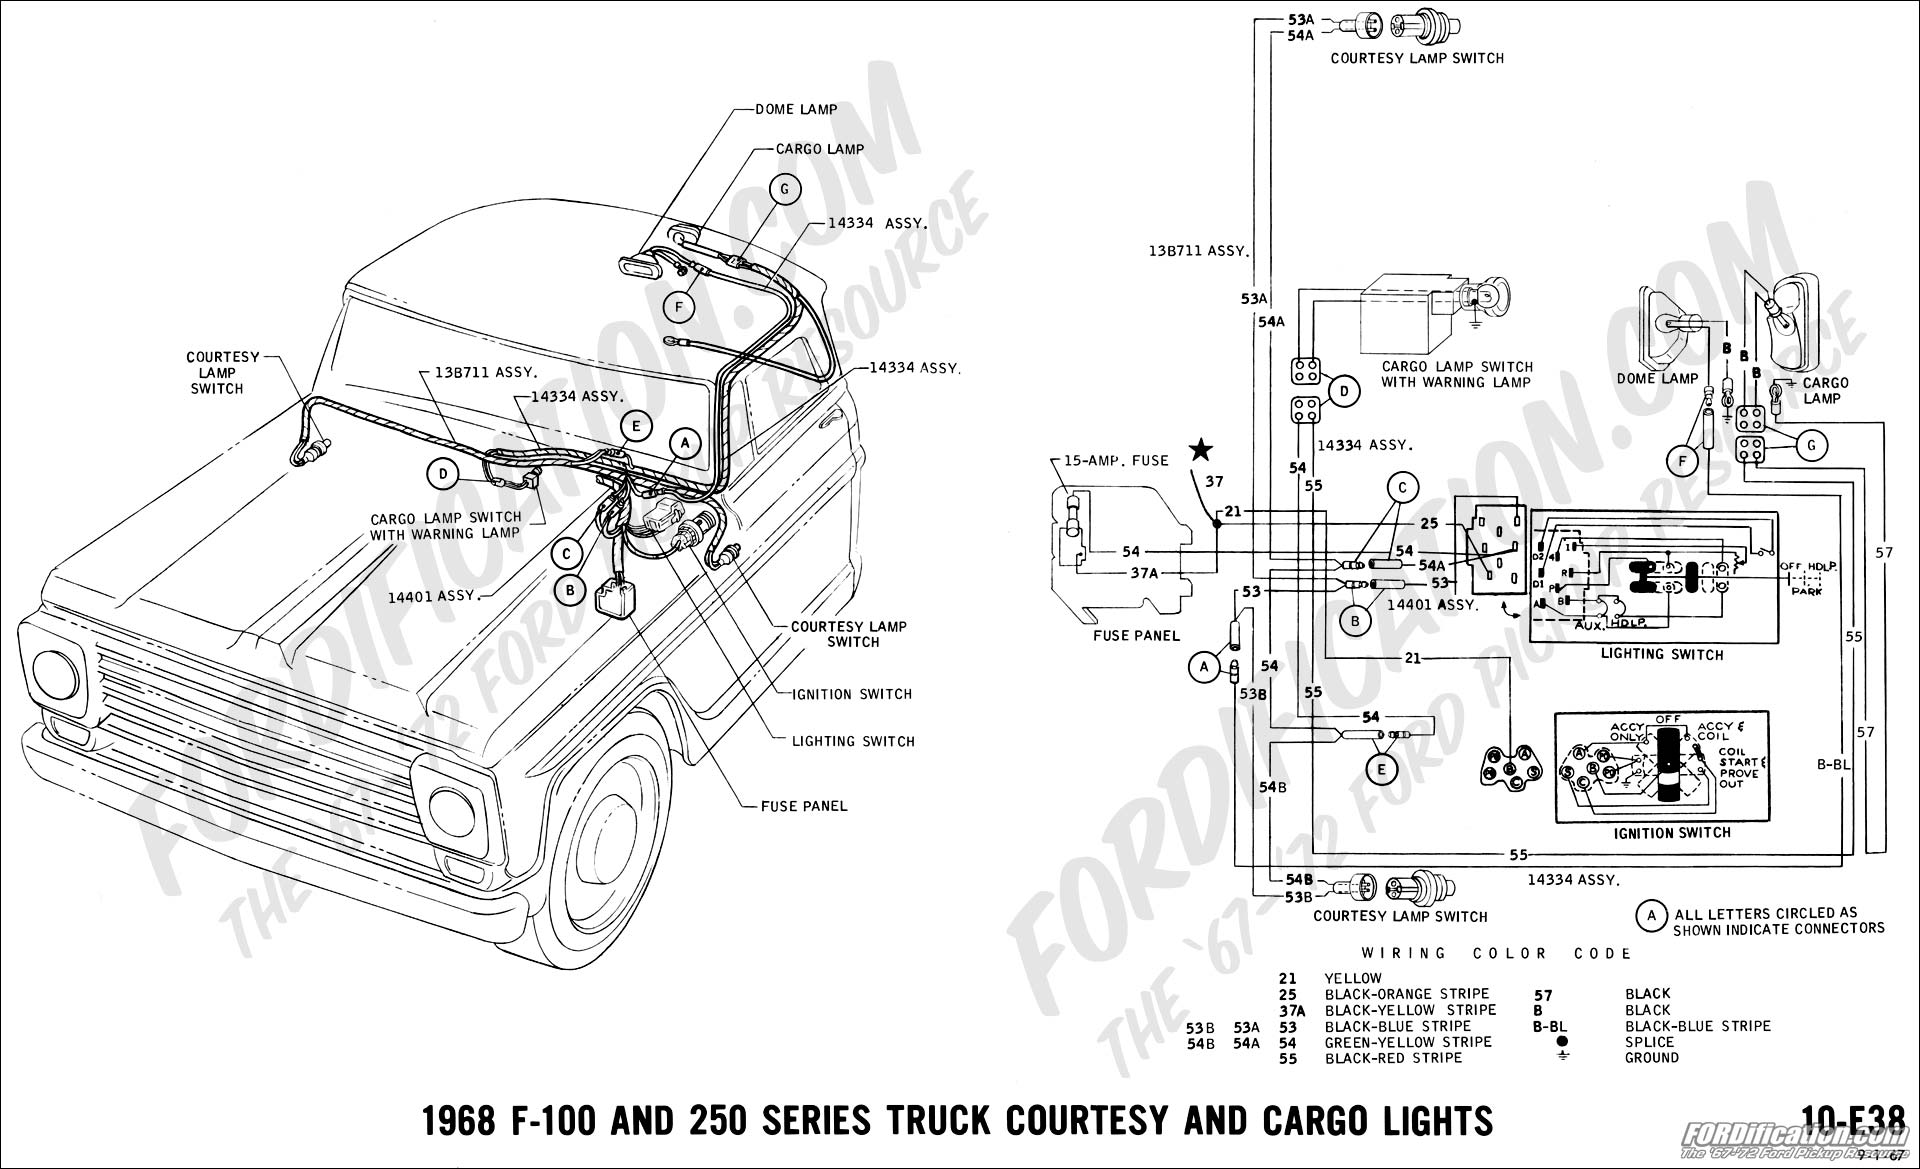 68 40 ford truck technical drawings and schematics section h wiring lance truck camper wiring diagram at gsmx.co